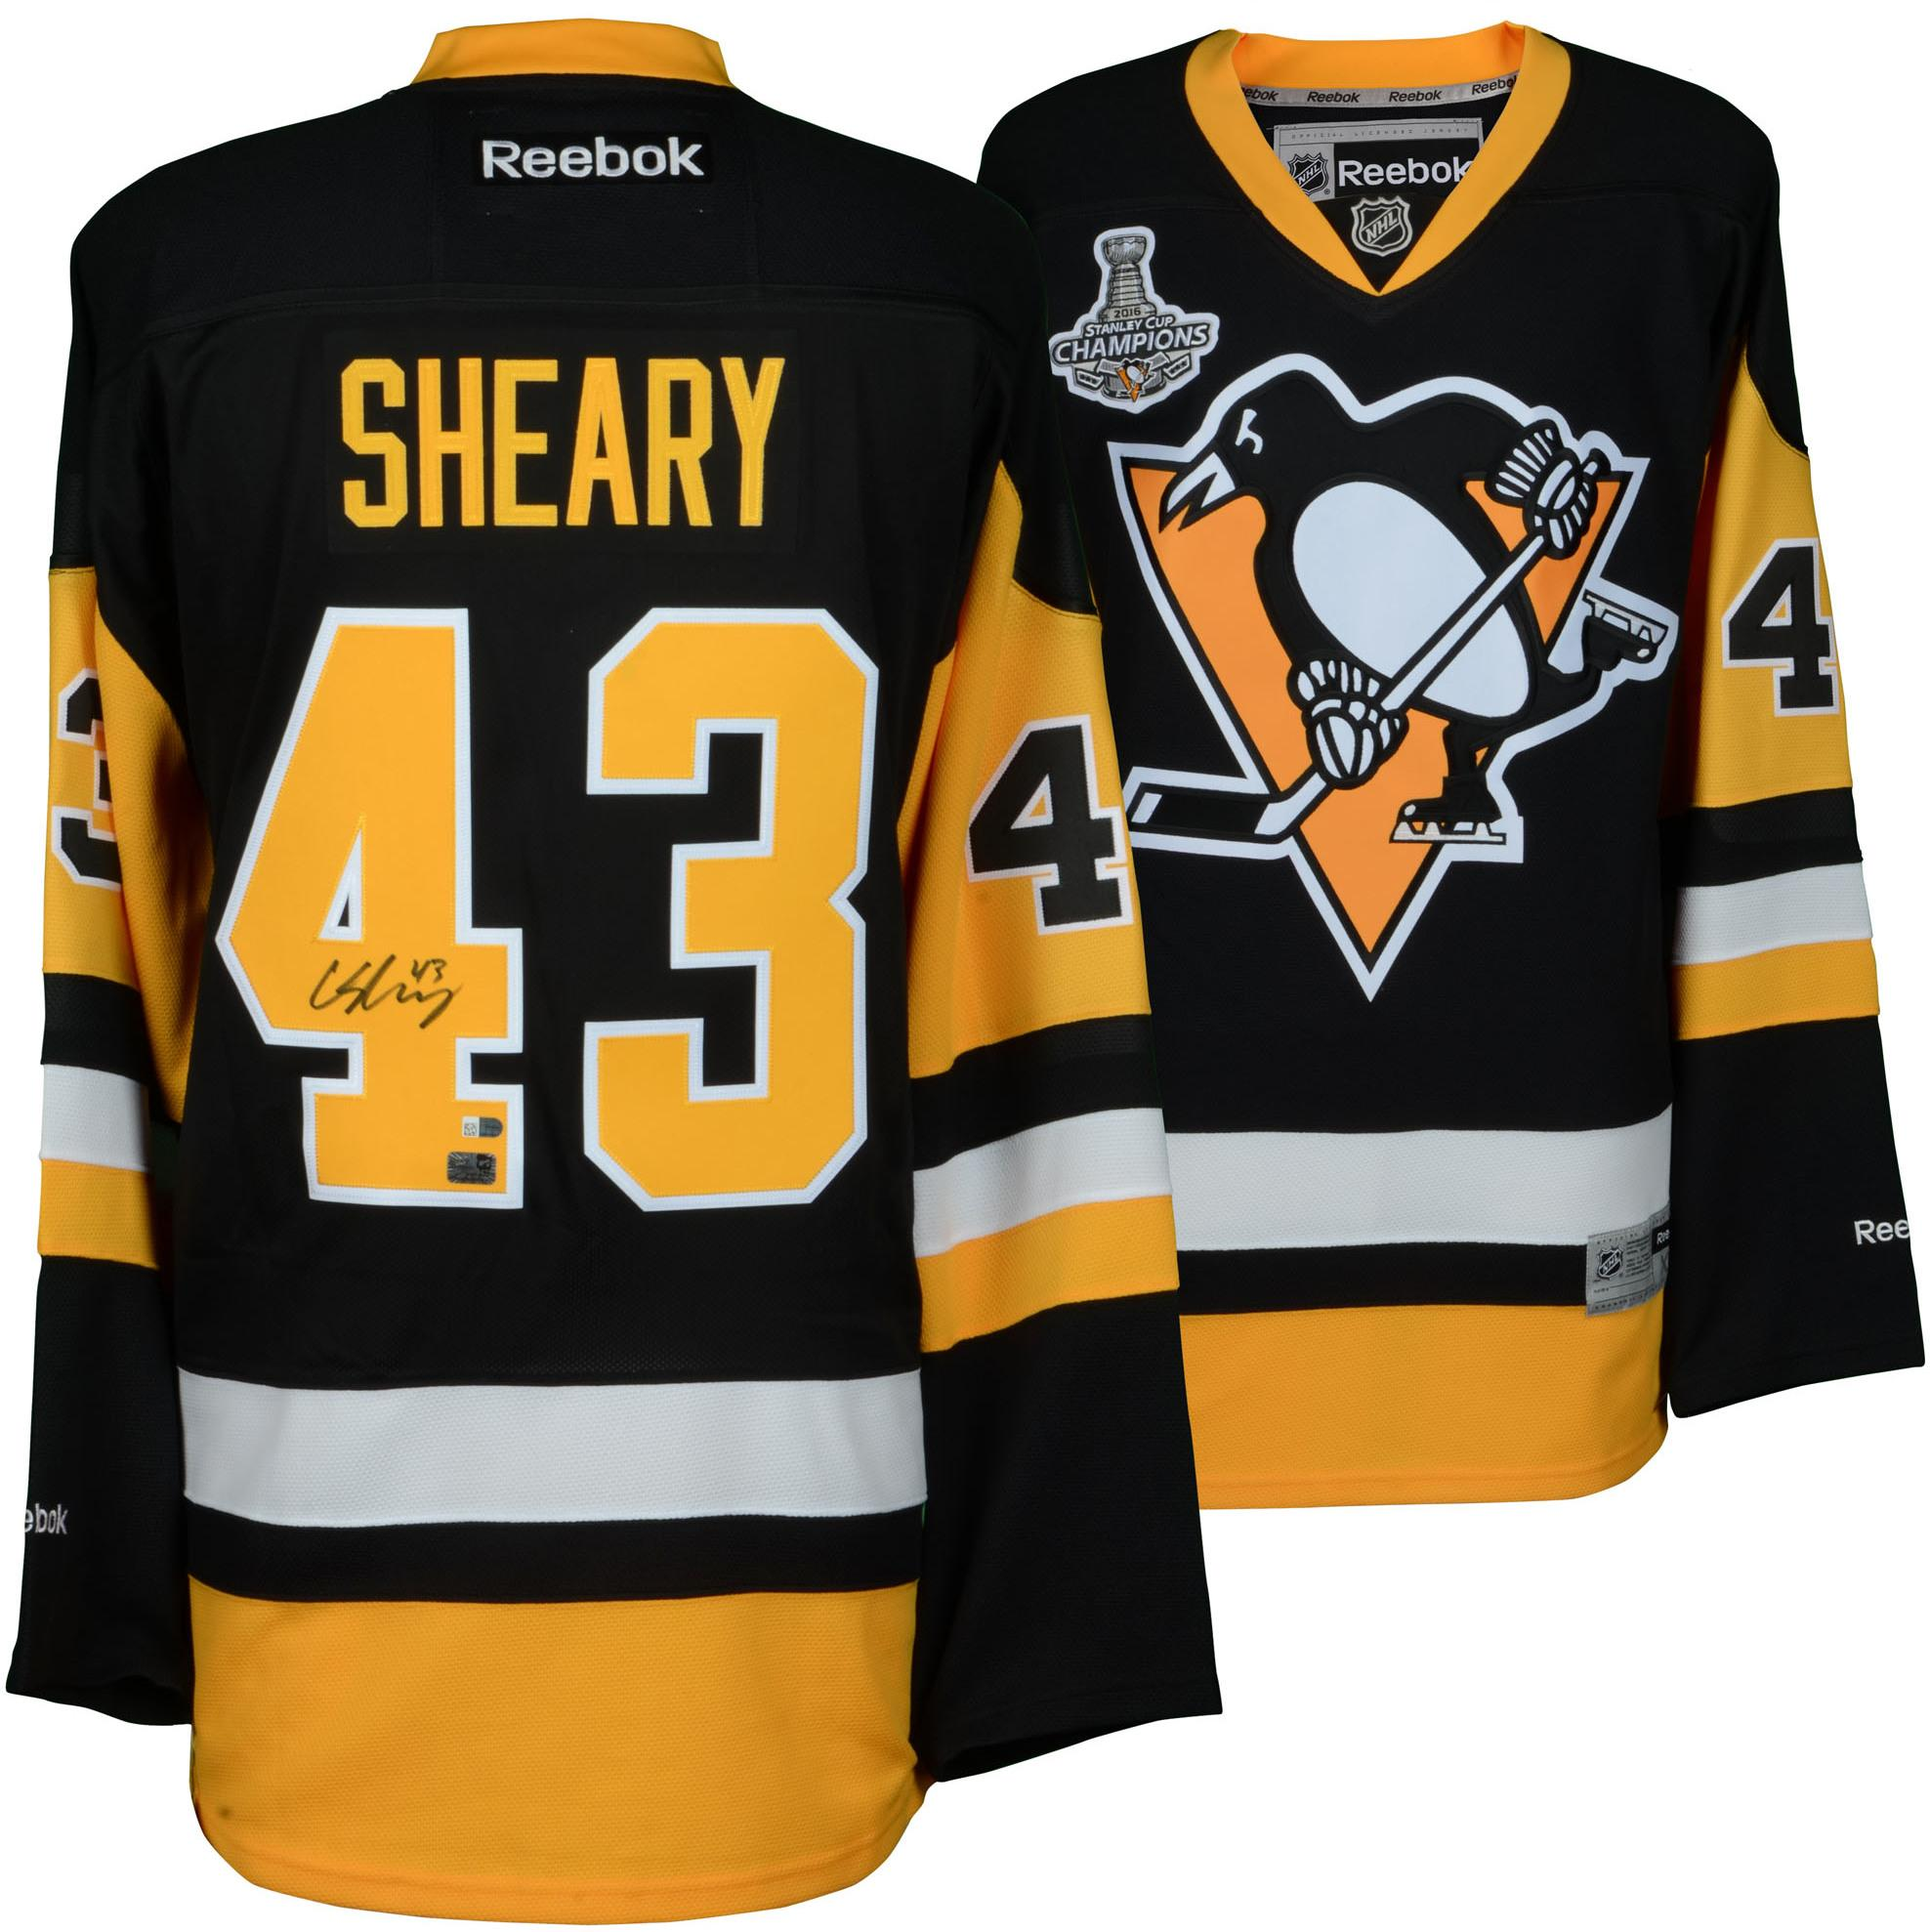 Conor Sheary Pittsburgh Penguins 2016 Stanley Cup Champions Autographed Black Reebok Premier Jersey with 2016 Stanley Cup Finals Patch - Fanatics Authentic Certified